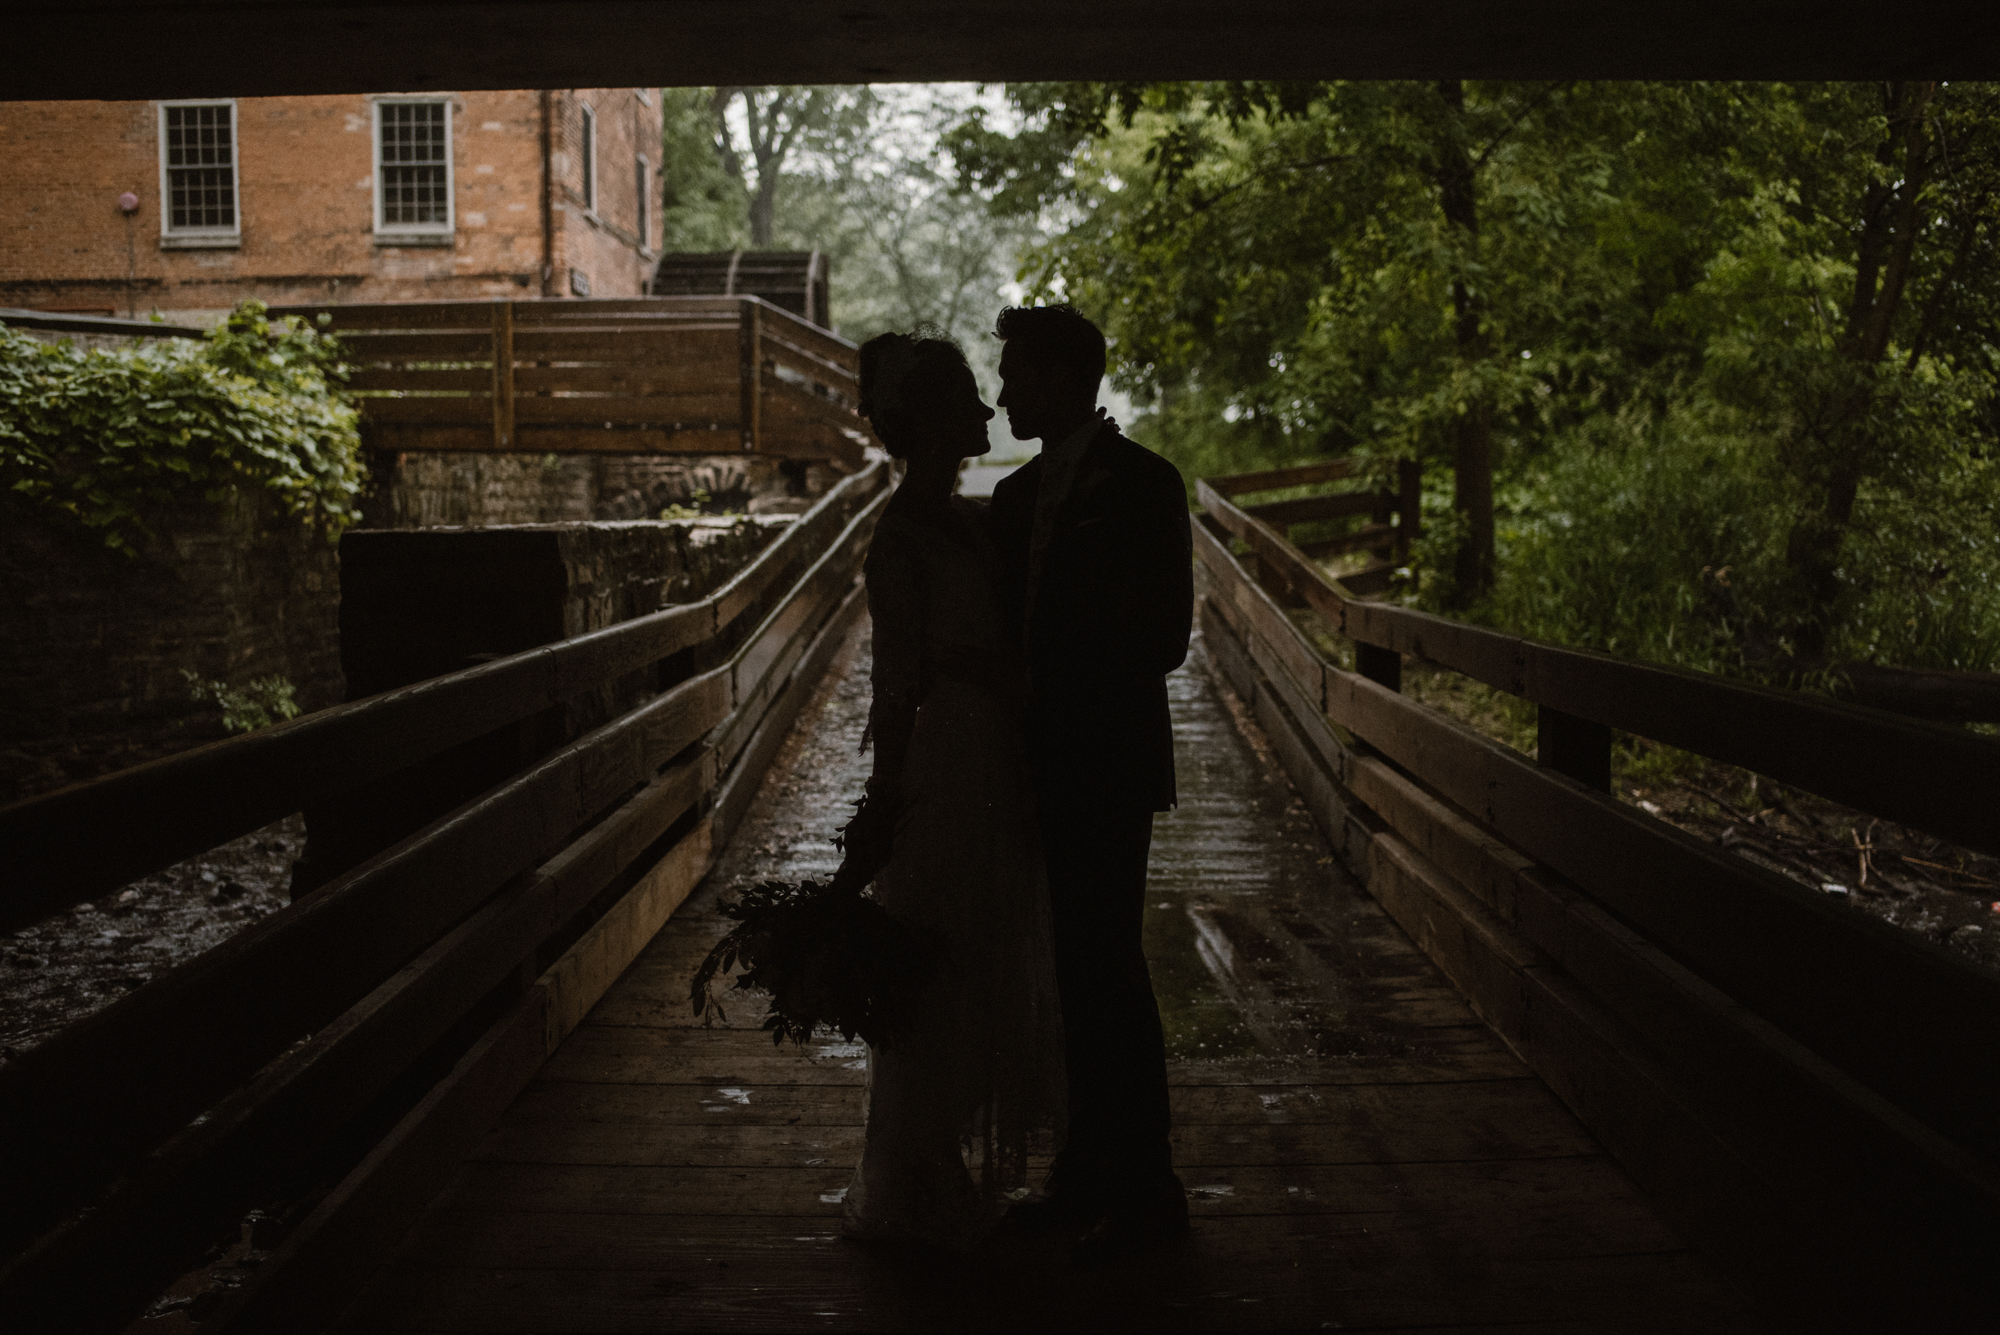 Mairi and Jude - Rainy Backyard Wedding - Intimate Wedding - Fun Reception Photos - Chicago Wedding Photographer - Catholic Wedding - White Sails Creative - Virginia Backyard Wedding Photographer_37.jpg